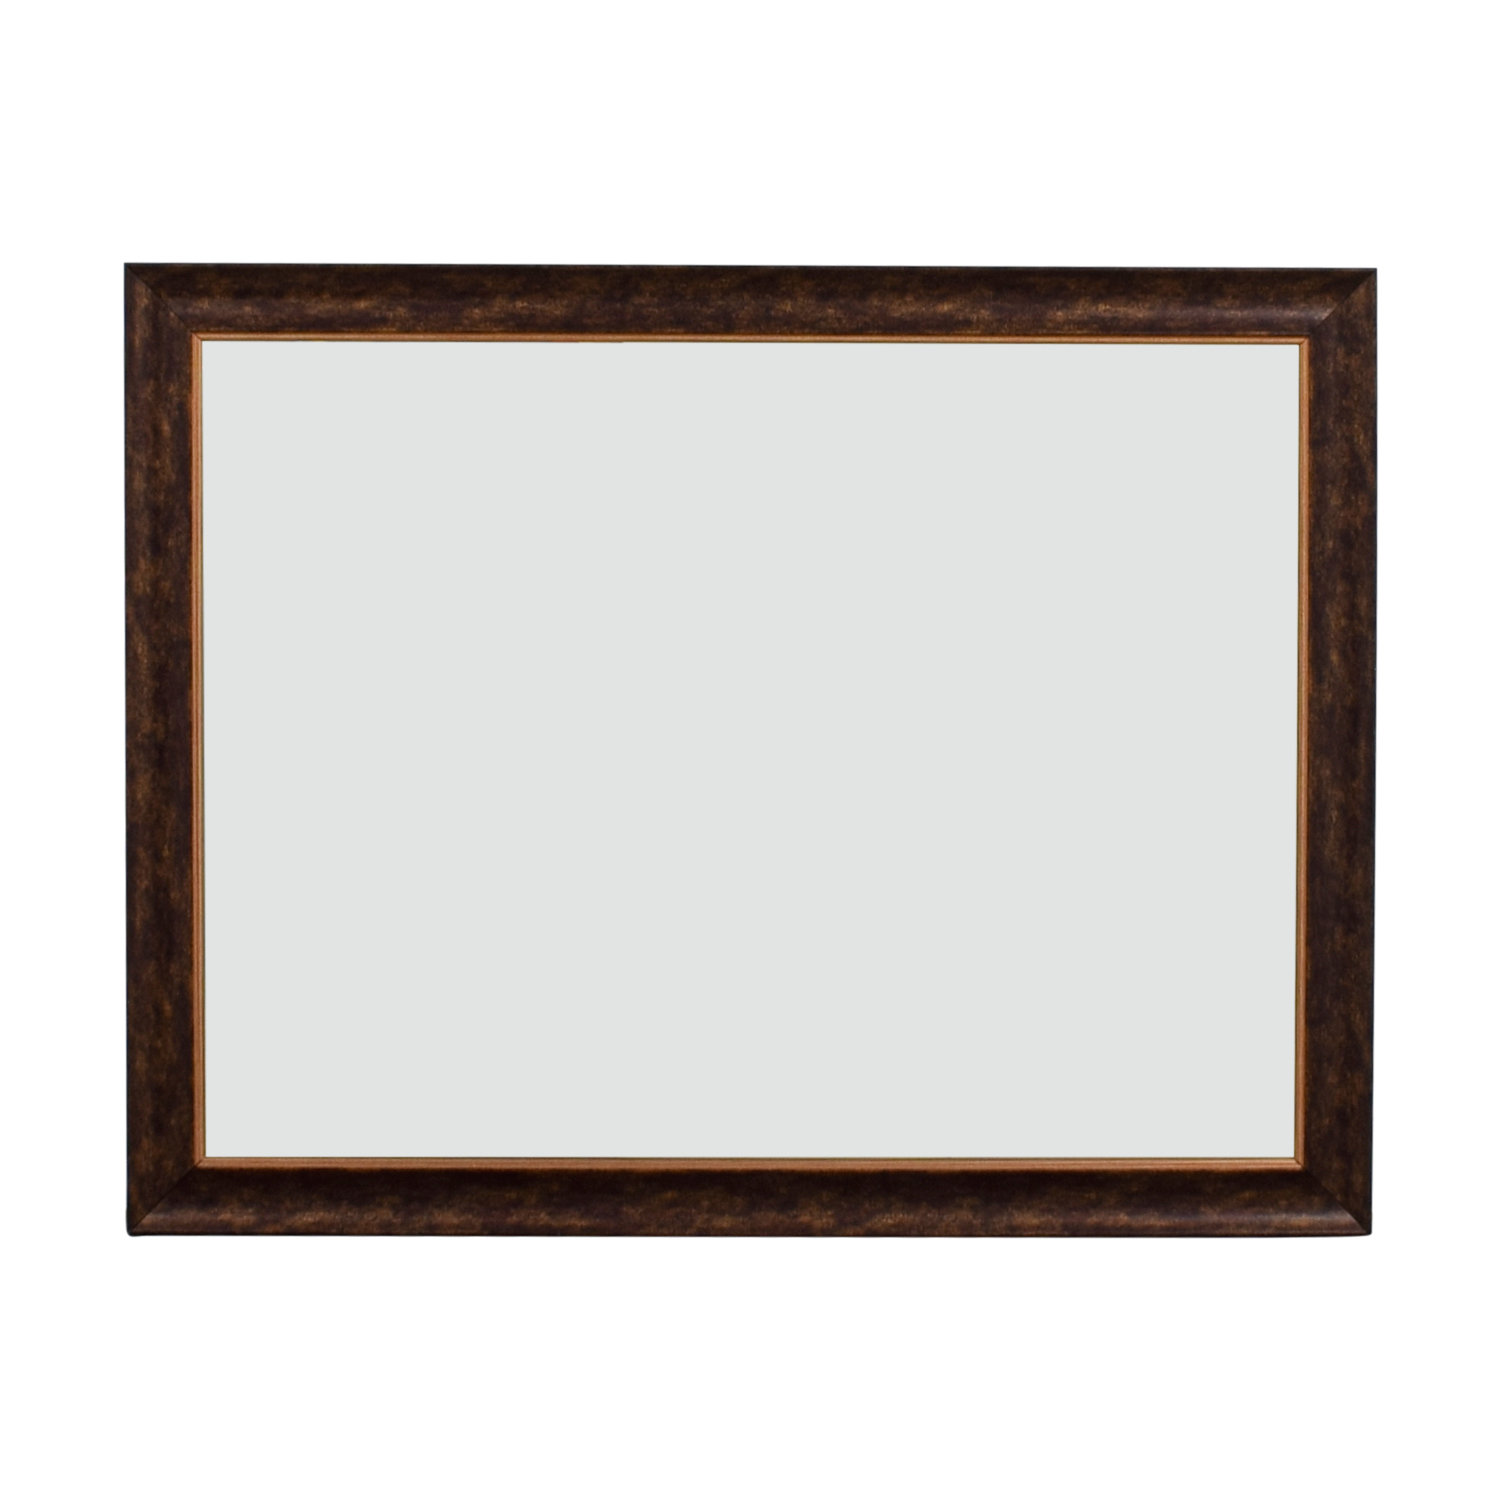 Bombay and Company Bombay and Company Rustic Beveled Mirror Decor